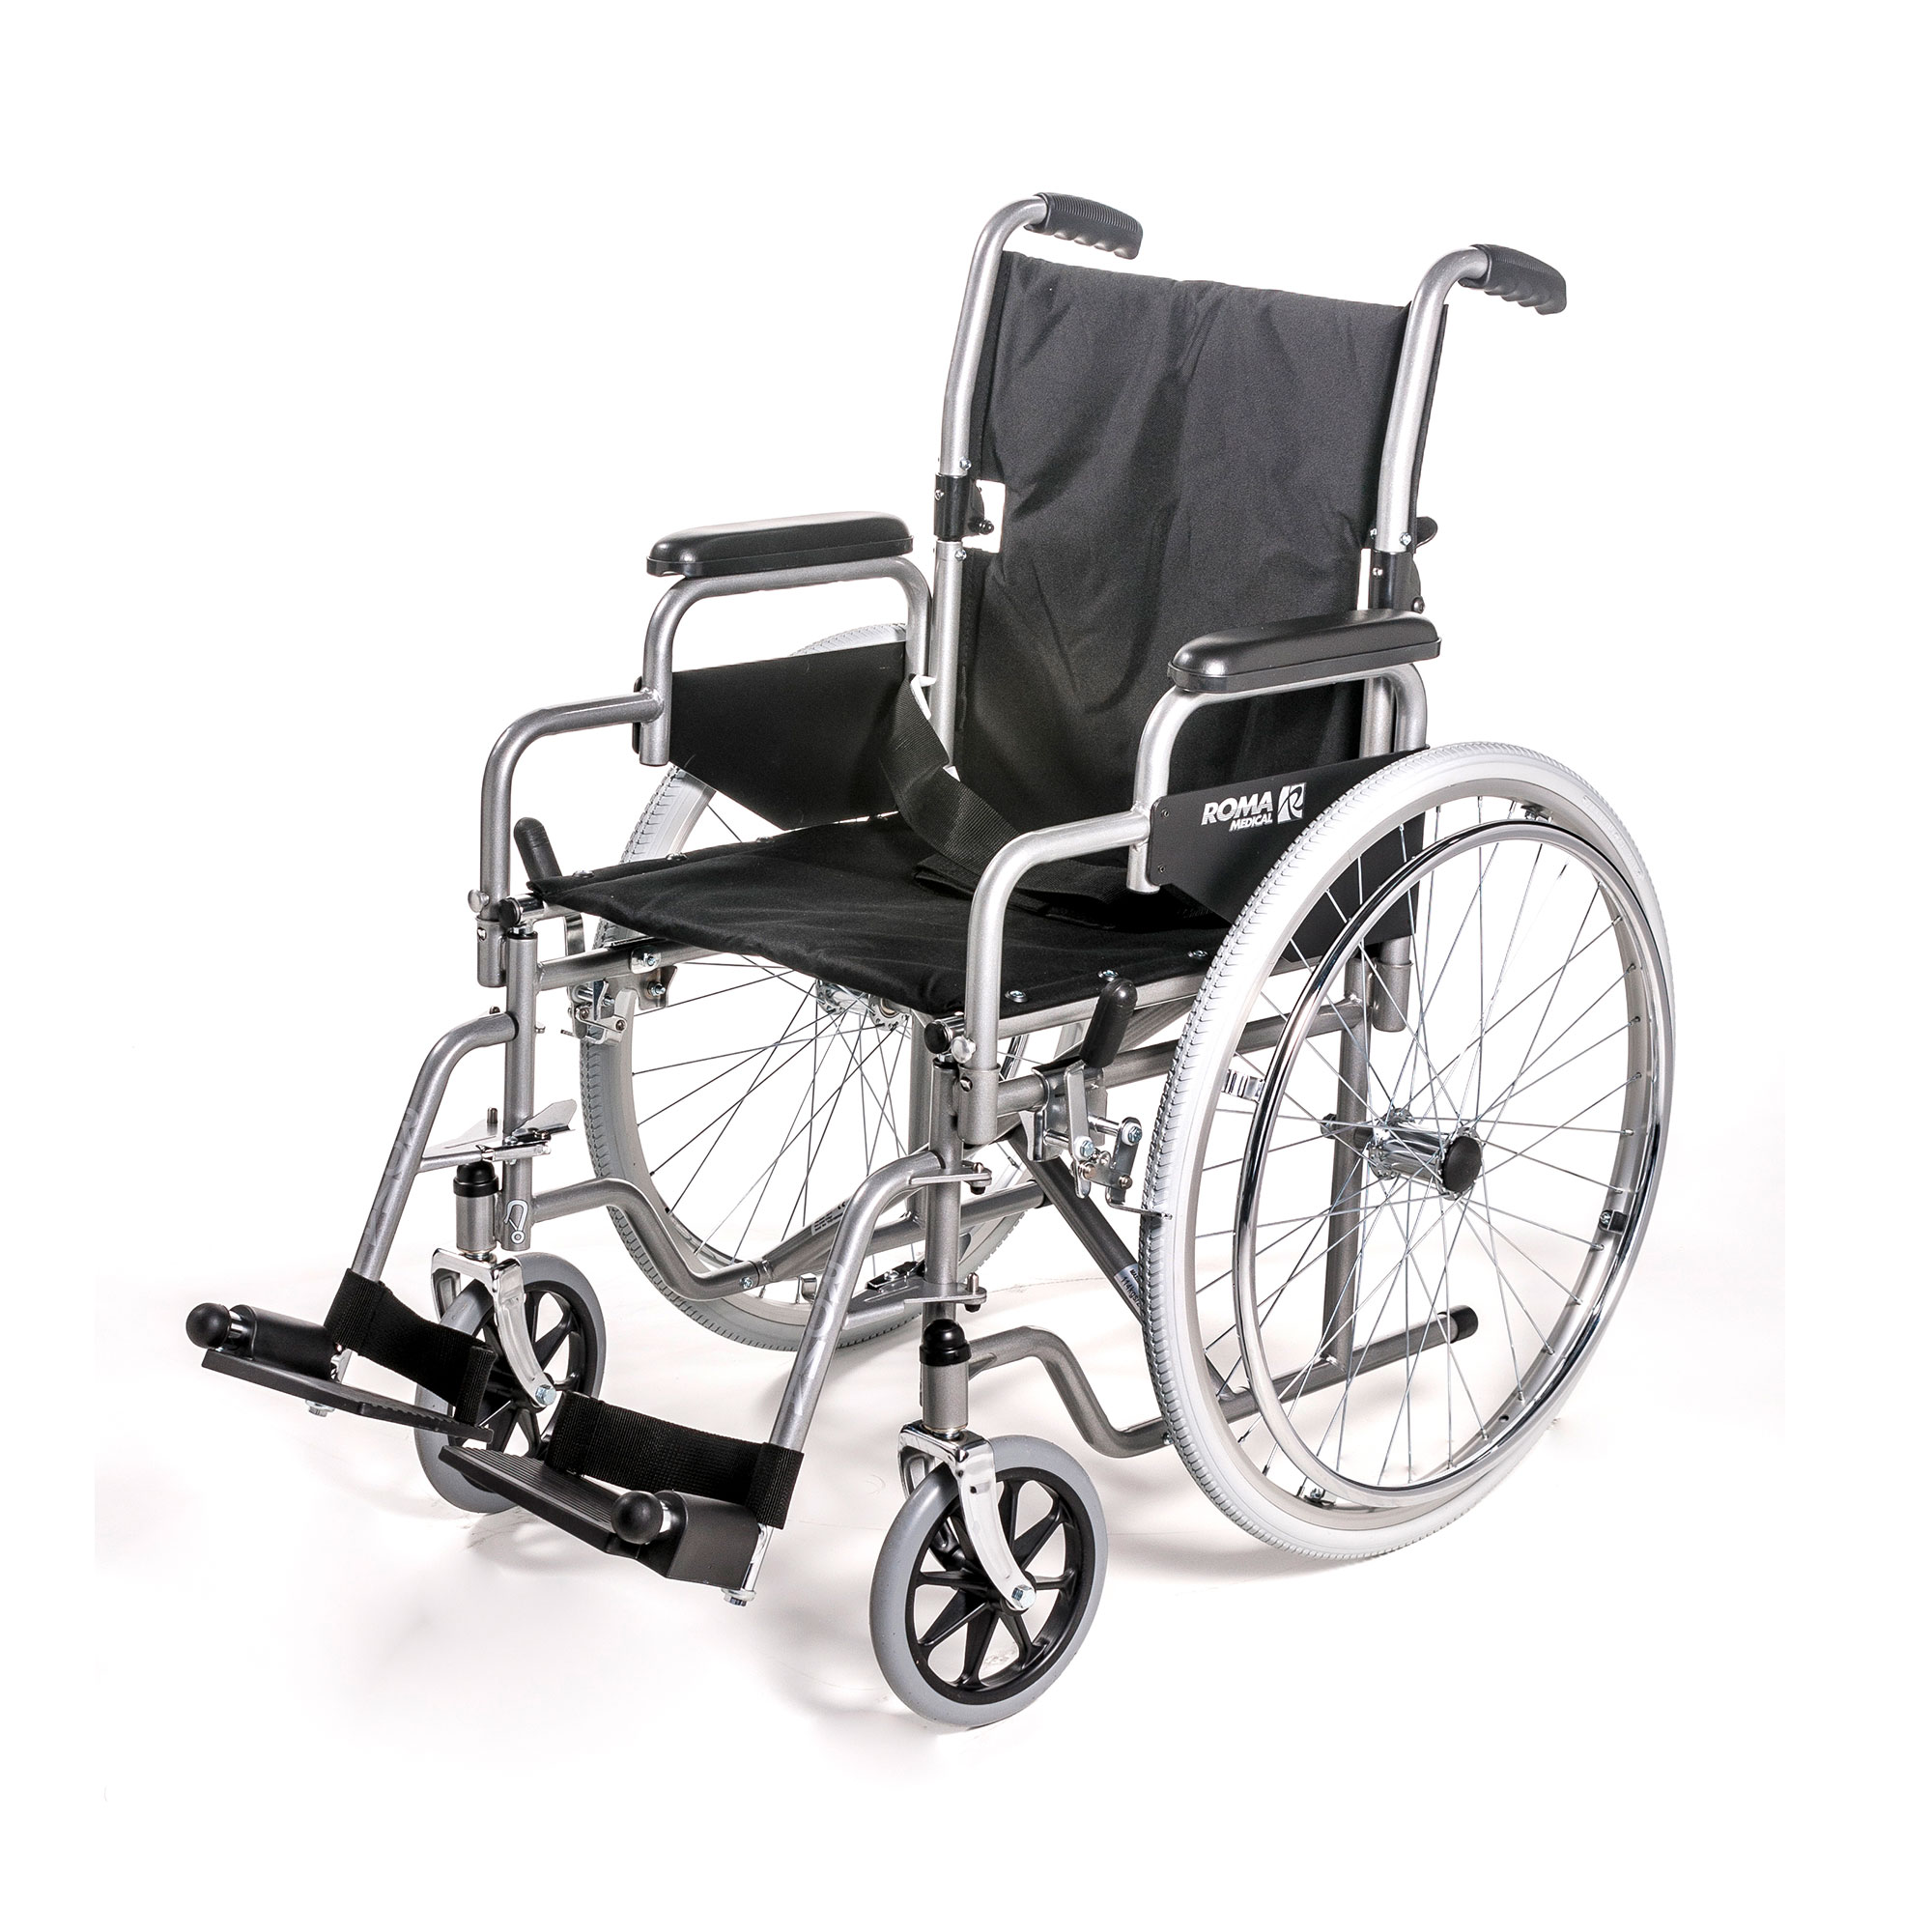 wheelchair nhs swing chair mothercare 1000 self propelled with detachable arms